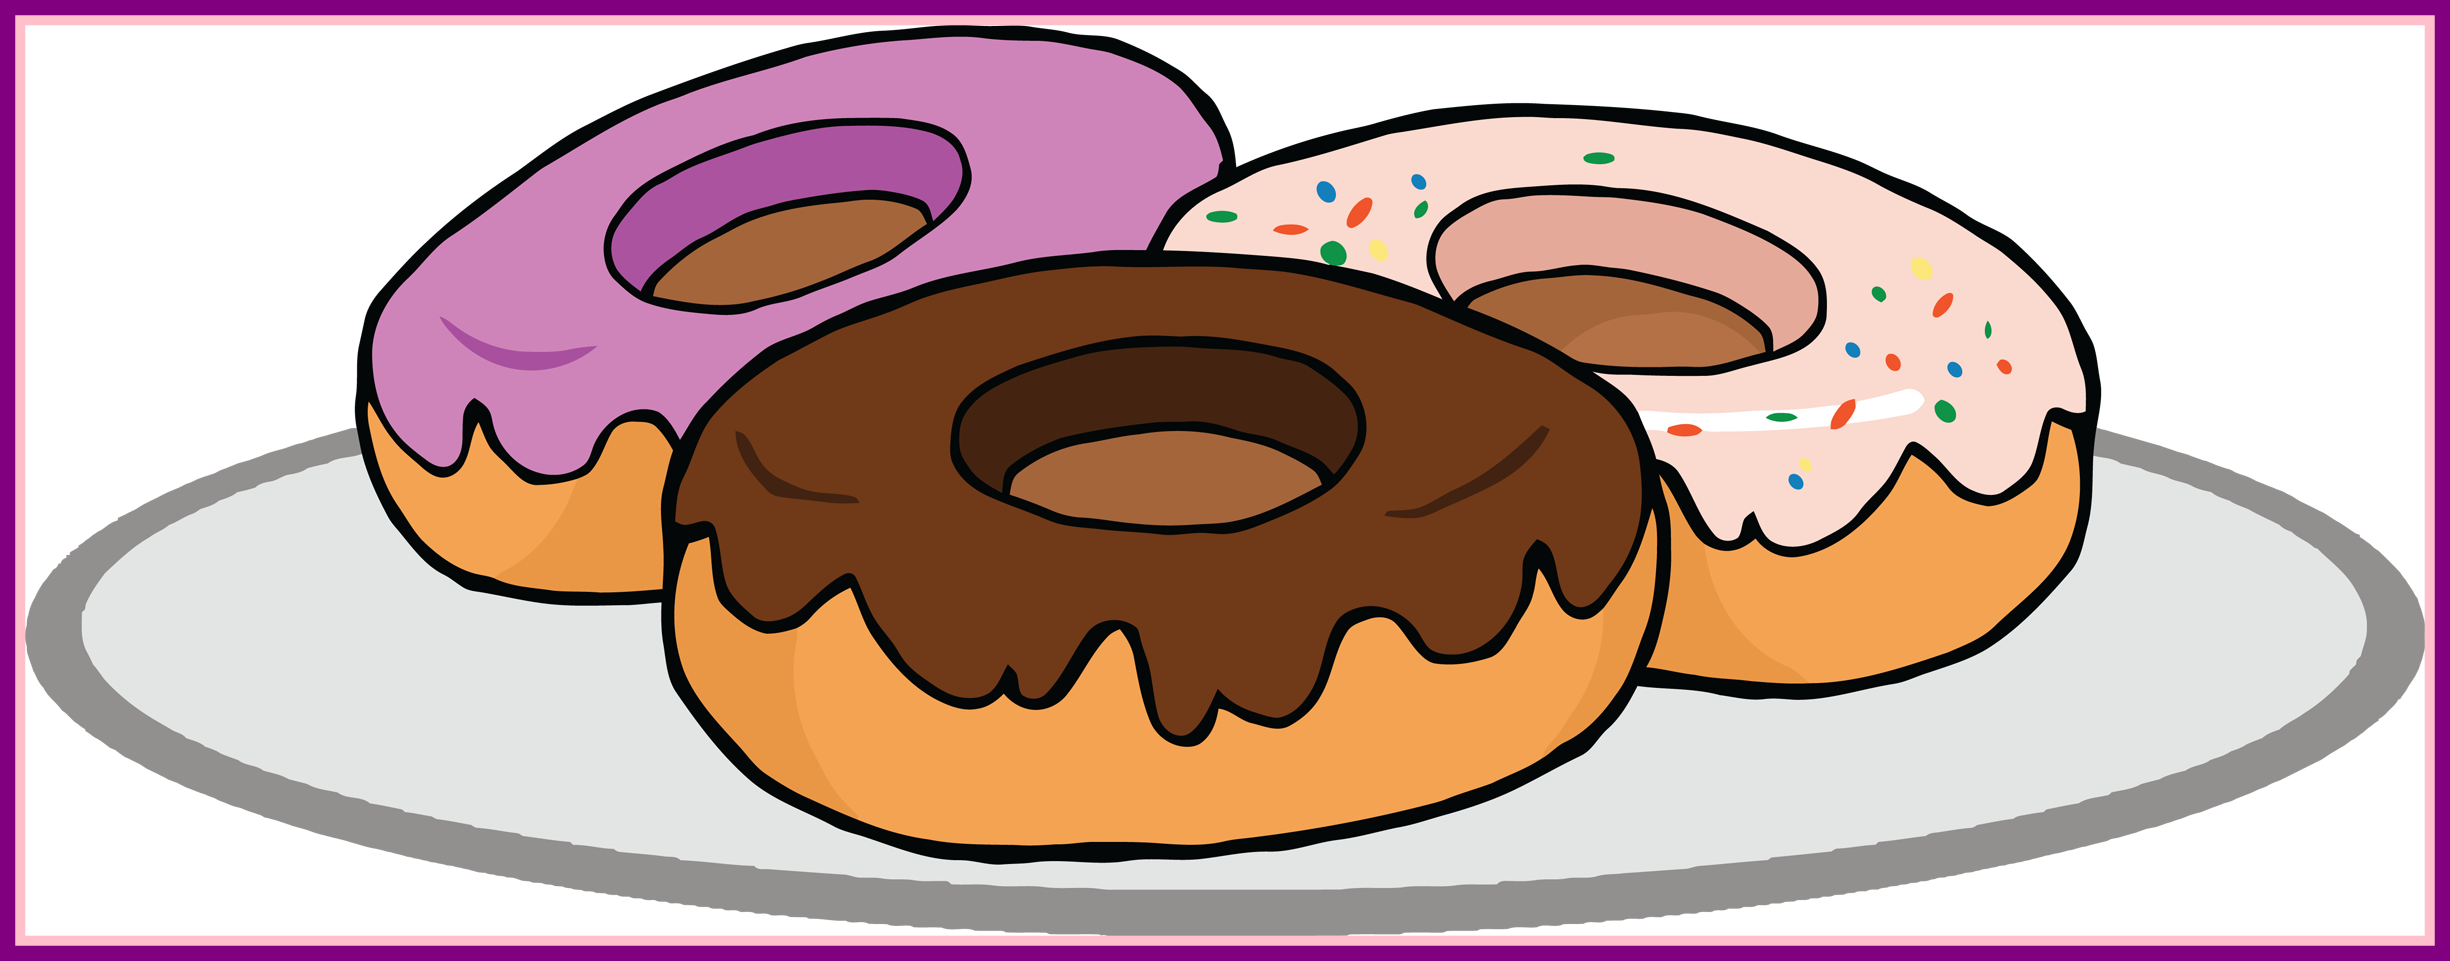 Shocking clip art recipes. Donut clipart printable